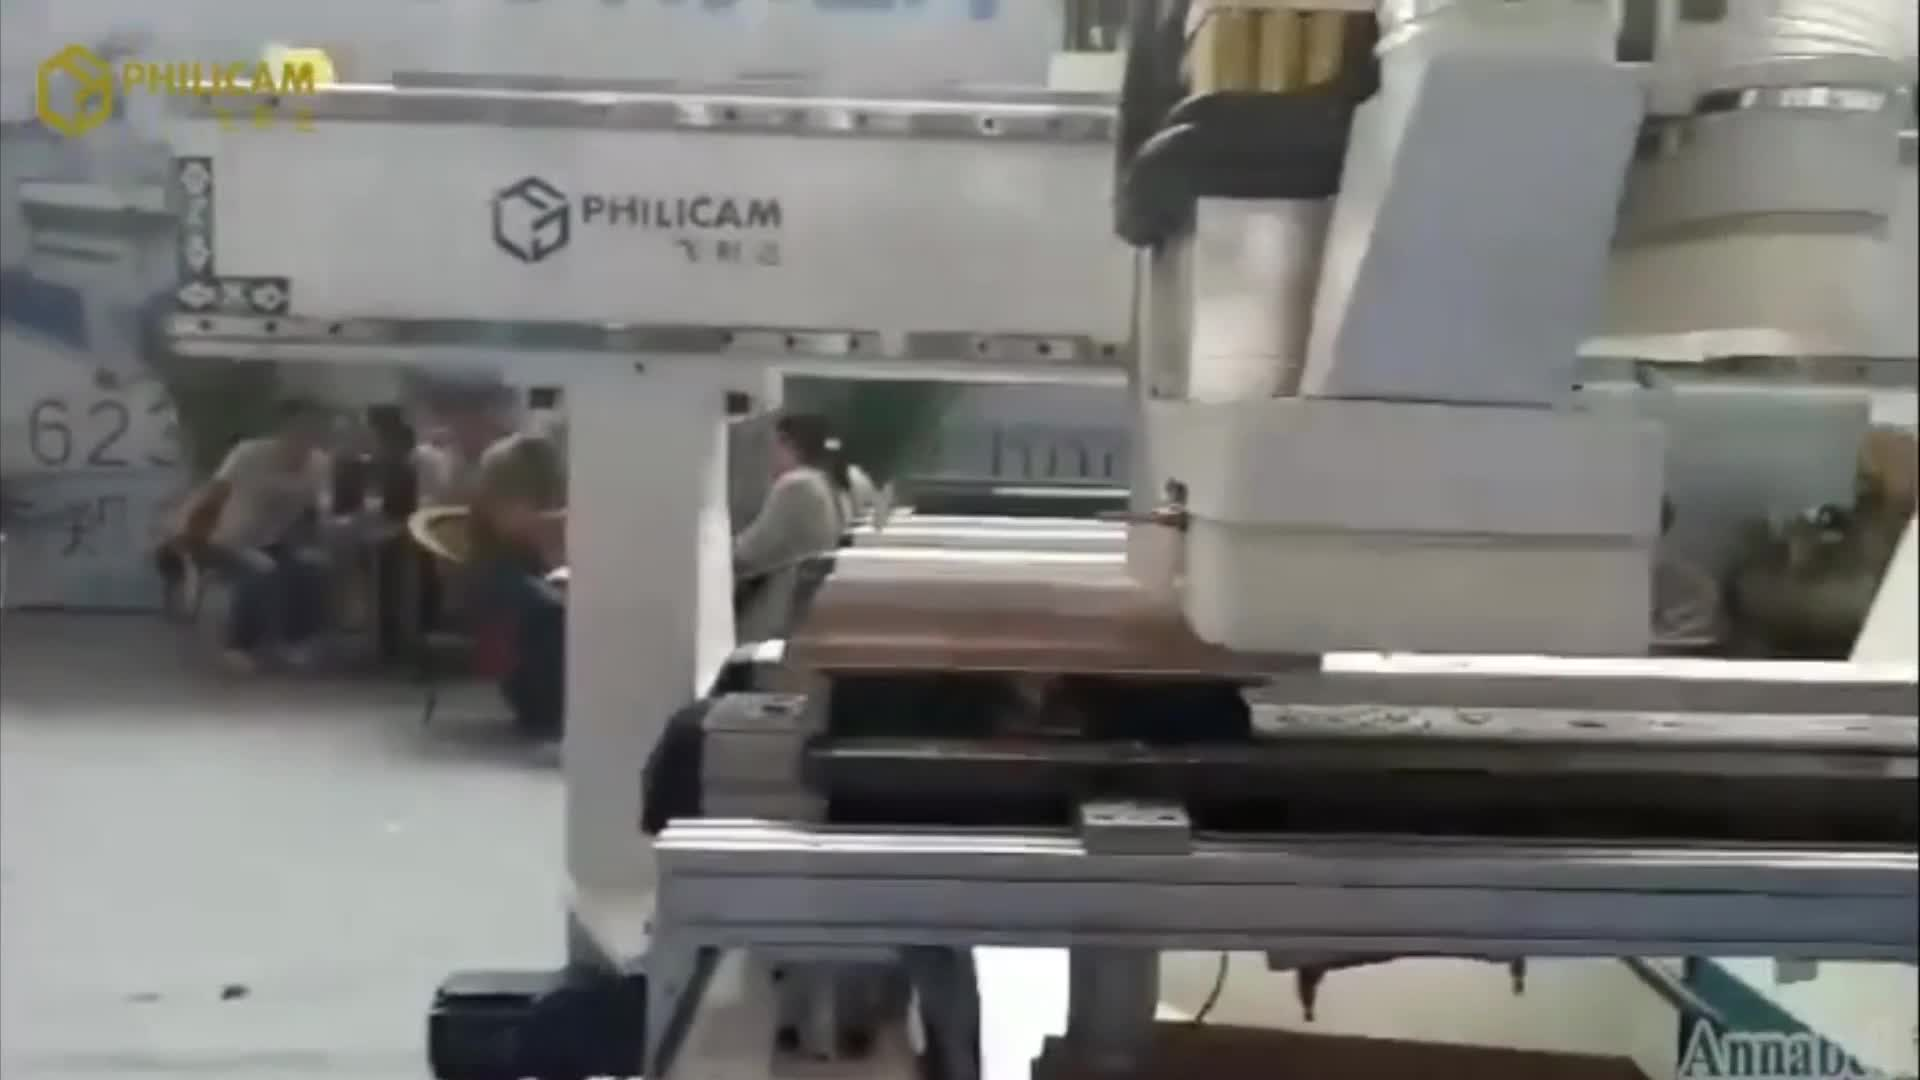 2017 Philicam PTP Side Drilling CNC Router Wood Working Carving Machinery